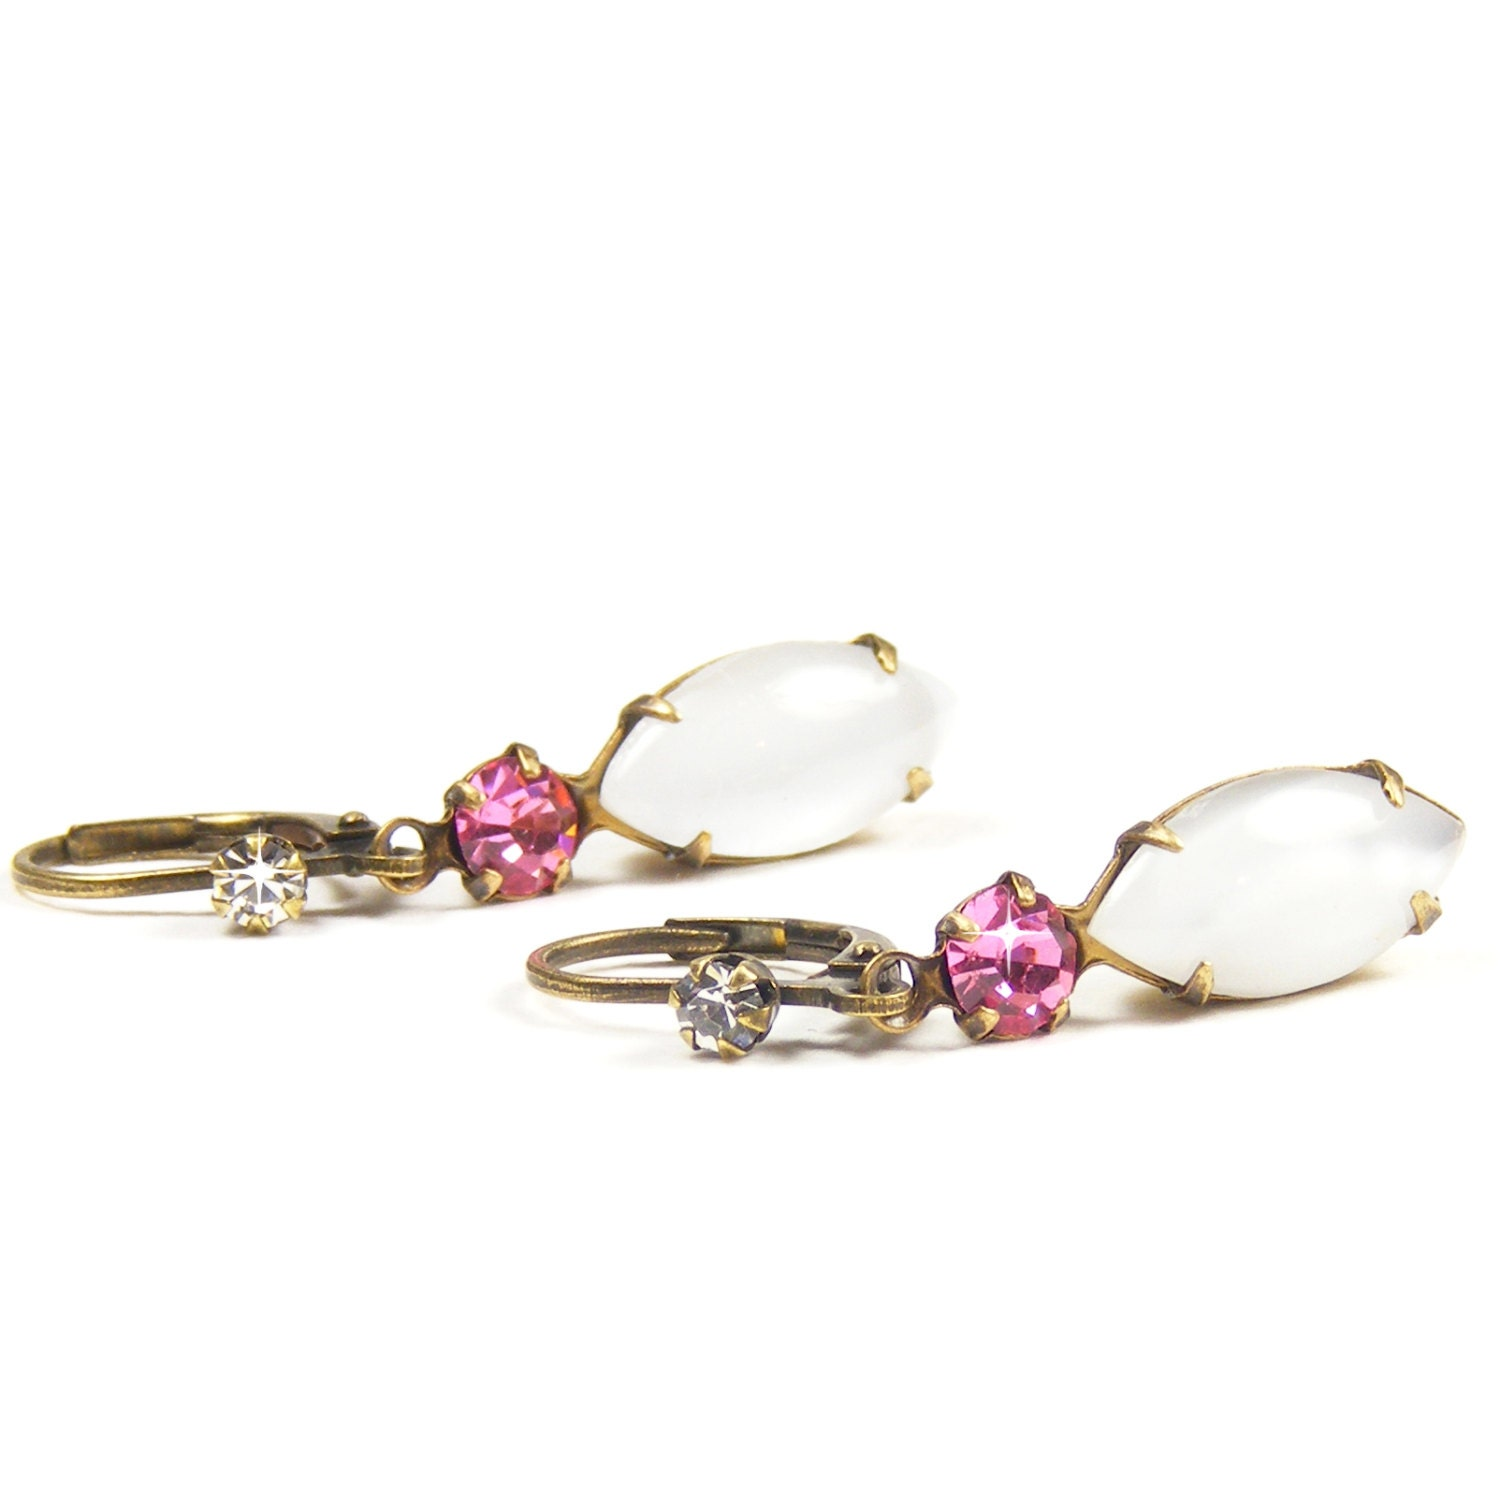 Vintage Rhinestone Earrings, Downton Abbey Inspired Drop Earrings, Milky White Opal & Rose Pink